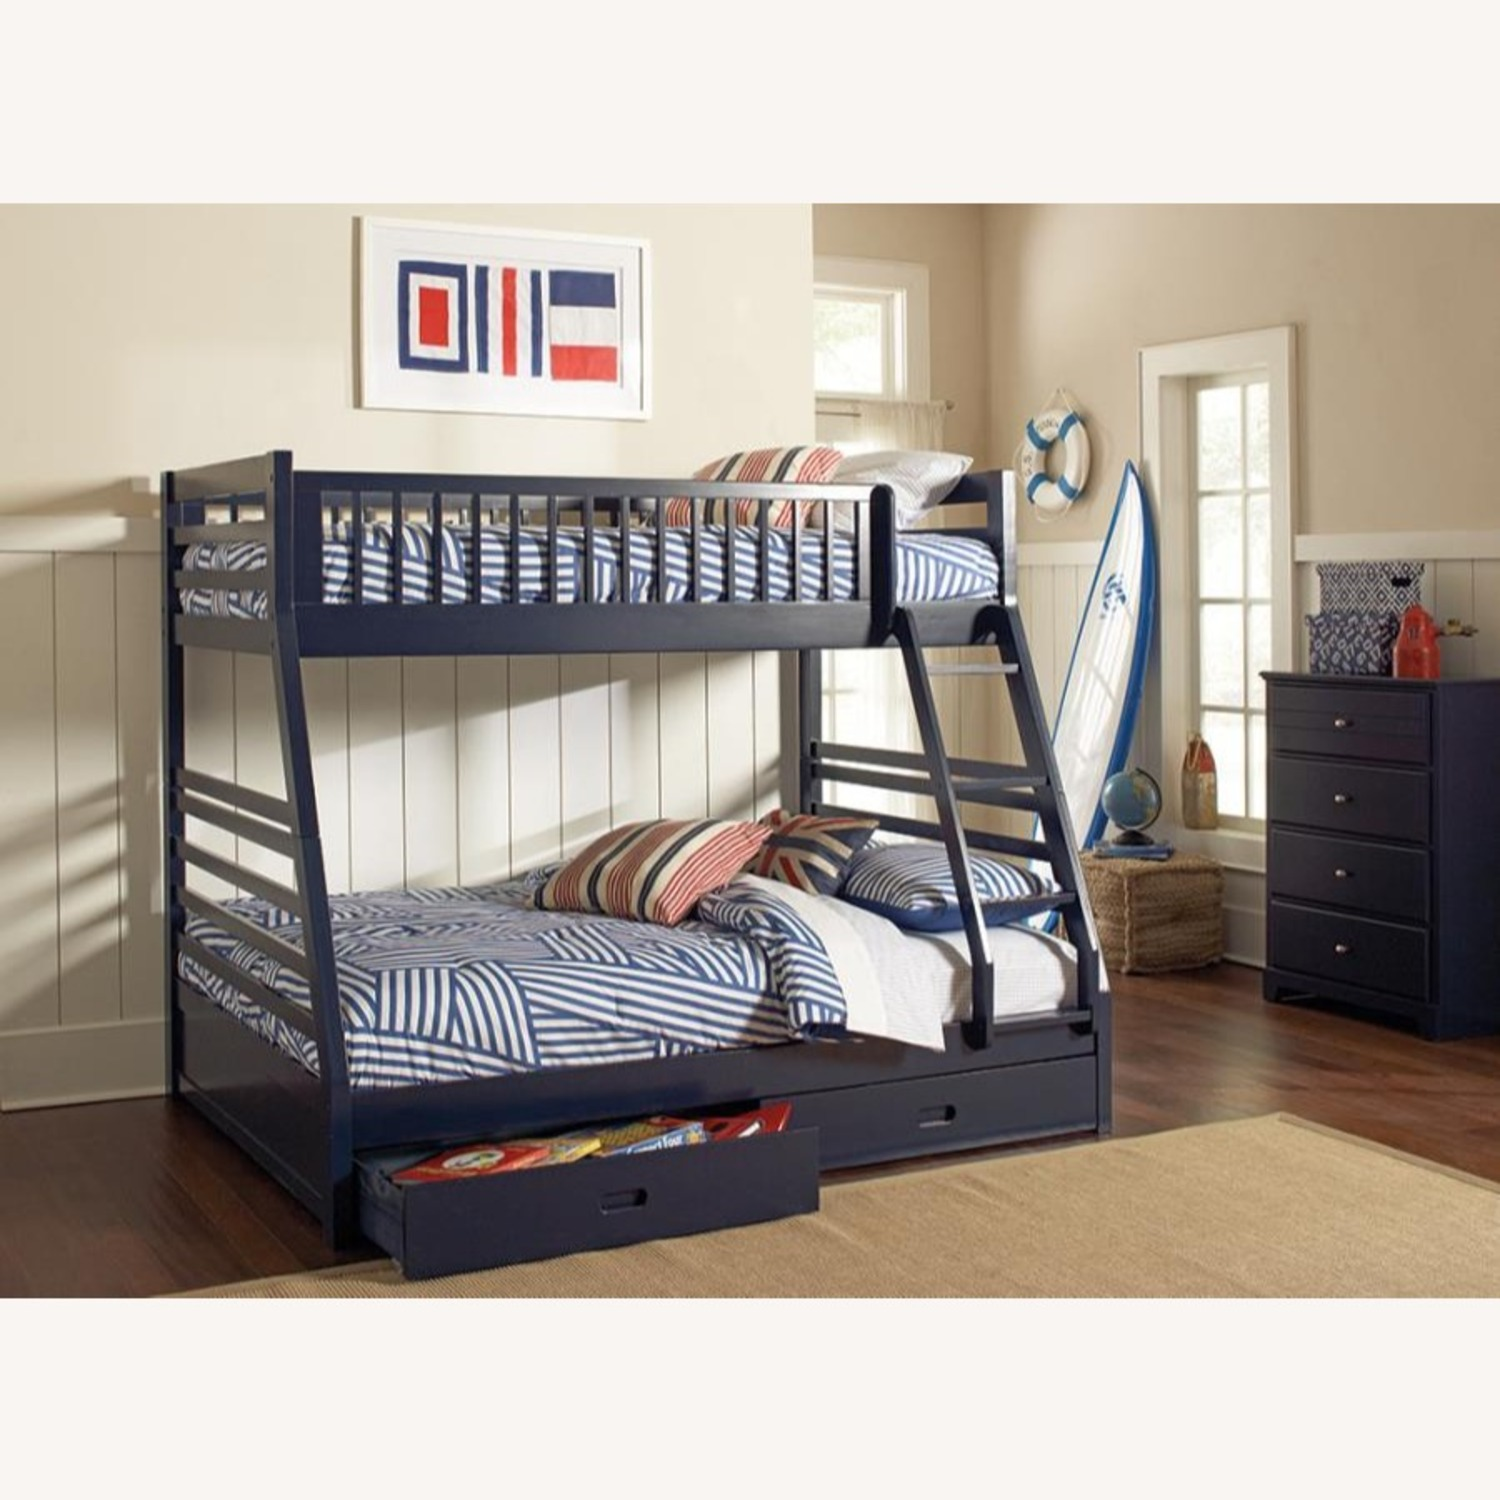 Twin Over Full Bunk Bed In Sleek Navy Blue Finish - image-1